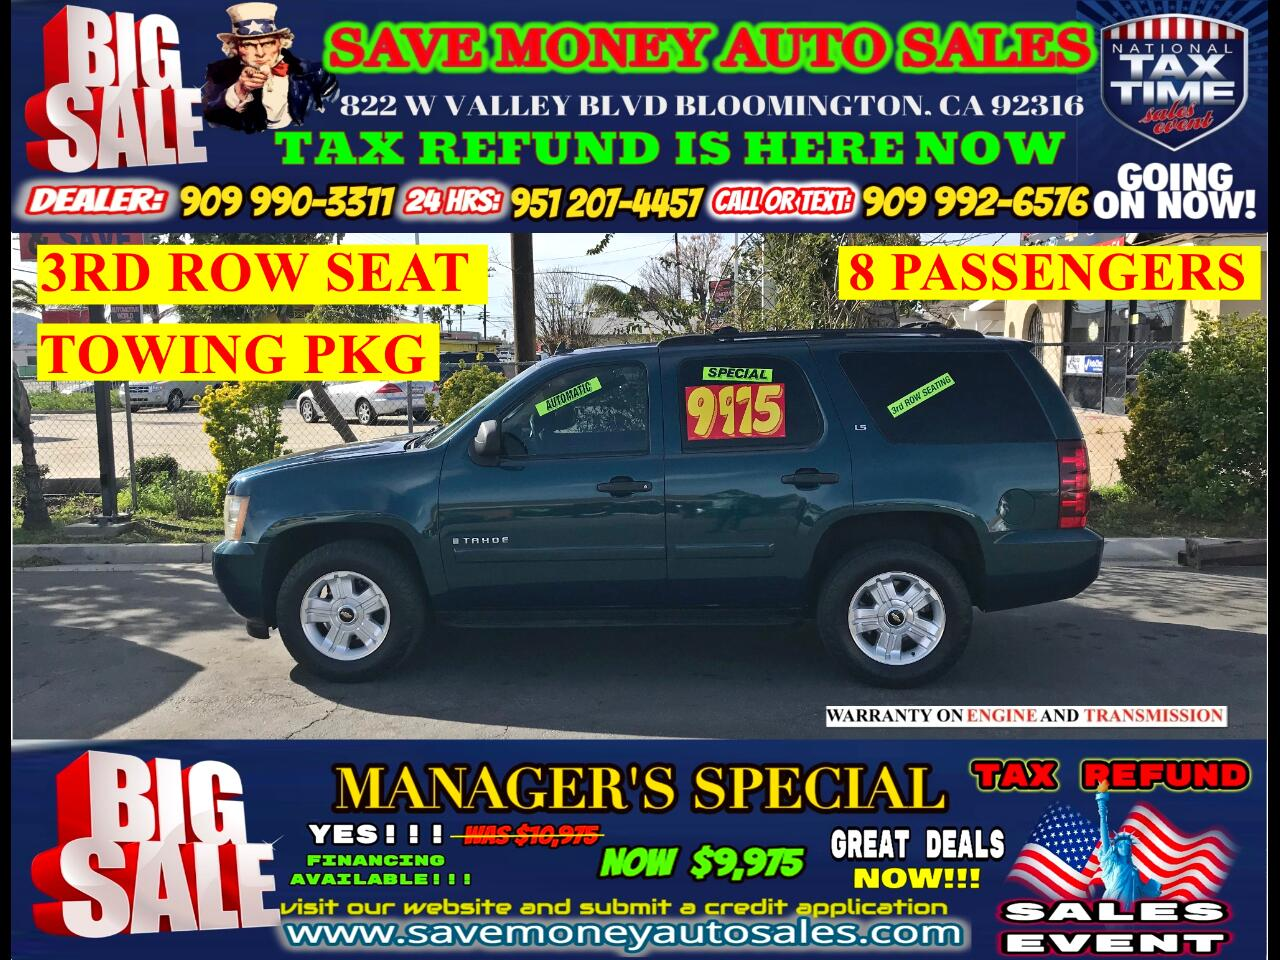 2007 Chevrolet Tahoe LS > 3RD ROW SEAT> 8 PASSANGER> TOWING PKG